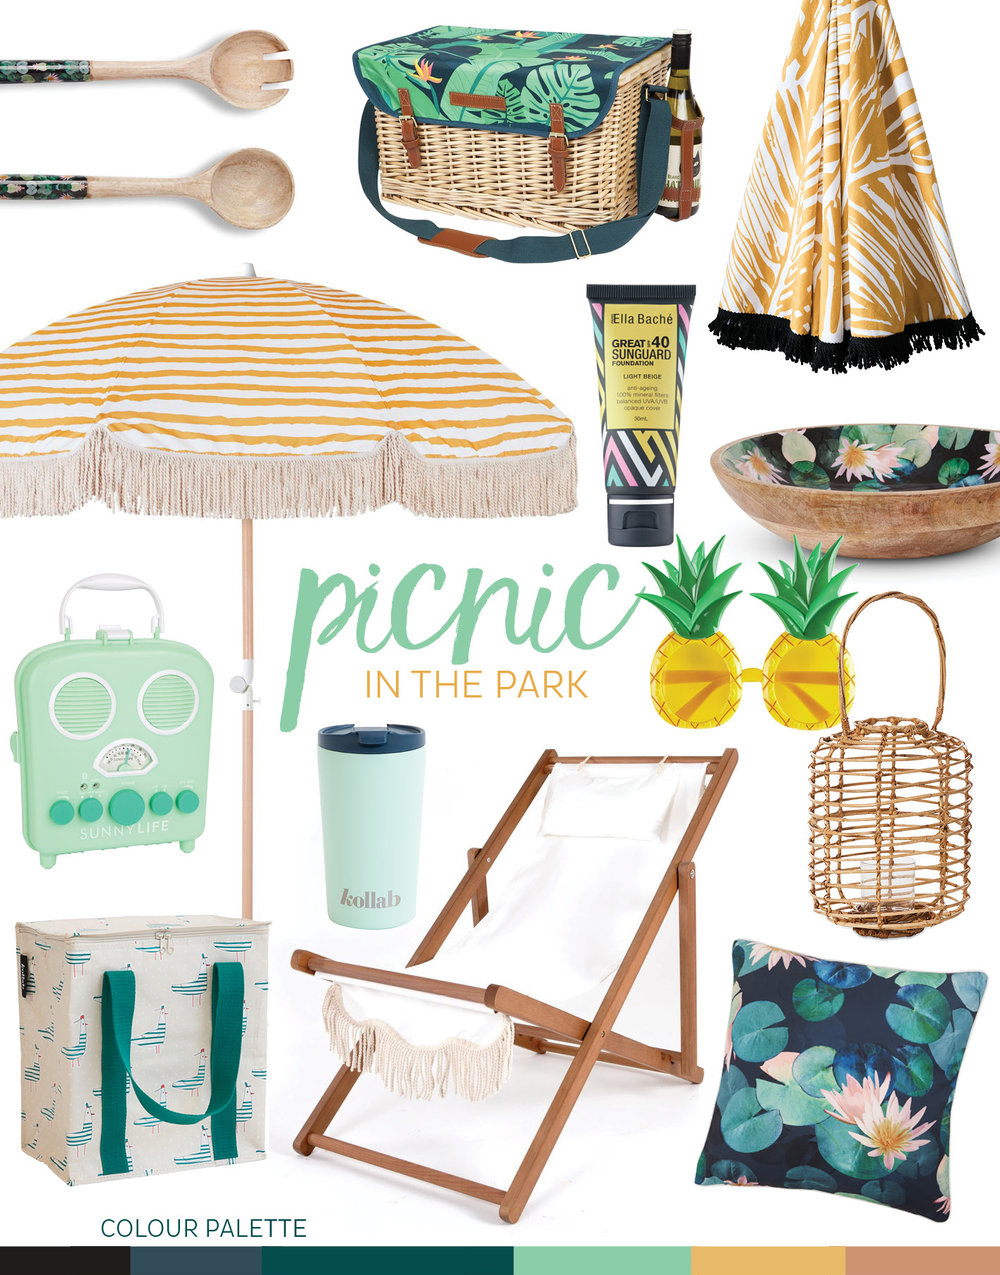 adore_home_blog_magazine_picnic_in_the_park_beach_outdoors_fun_summer_spring_alfresco.jpg